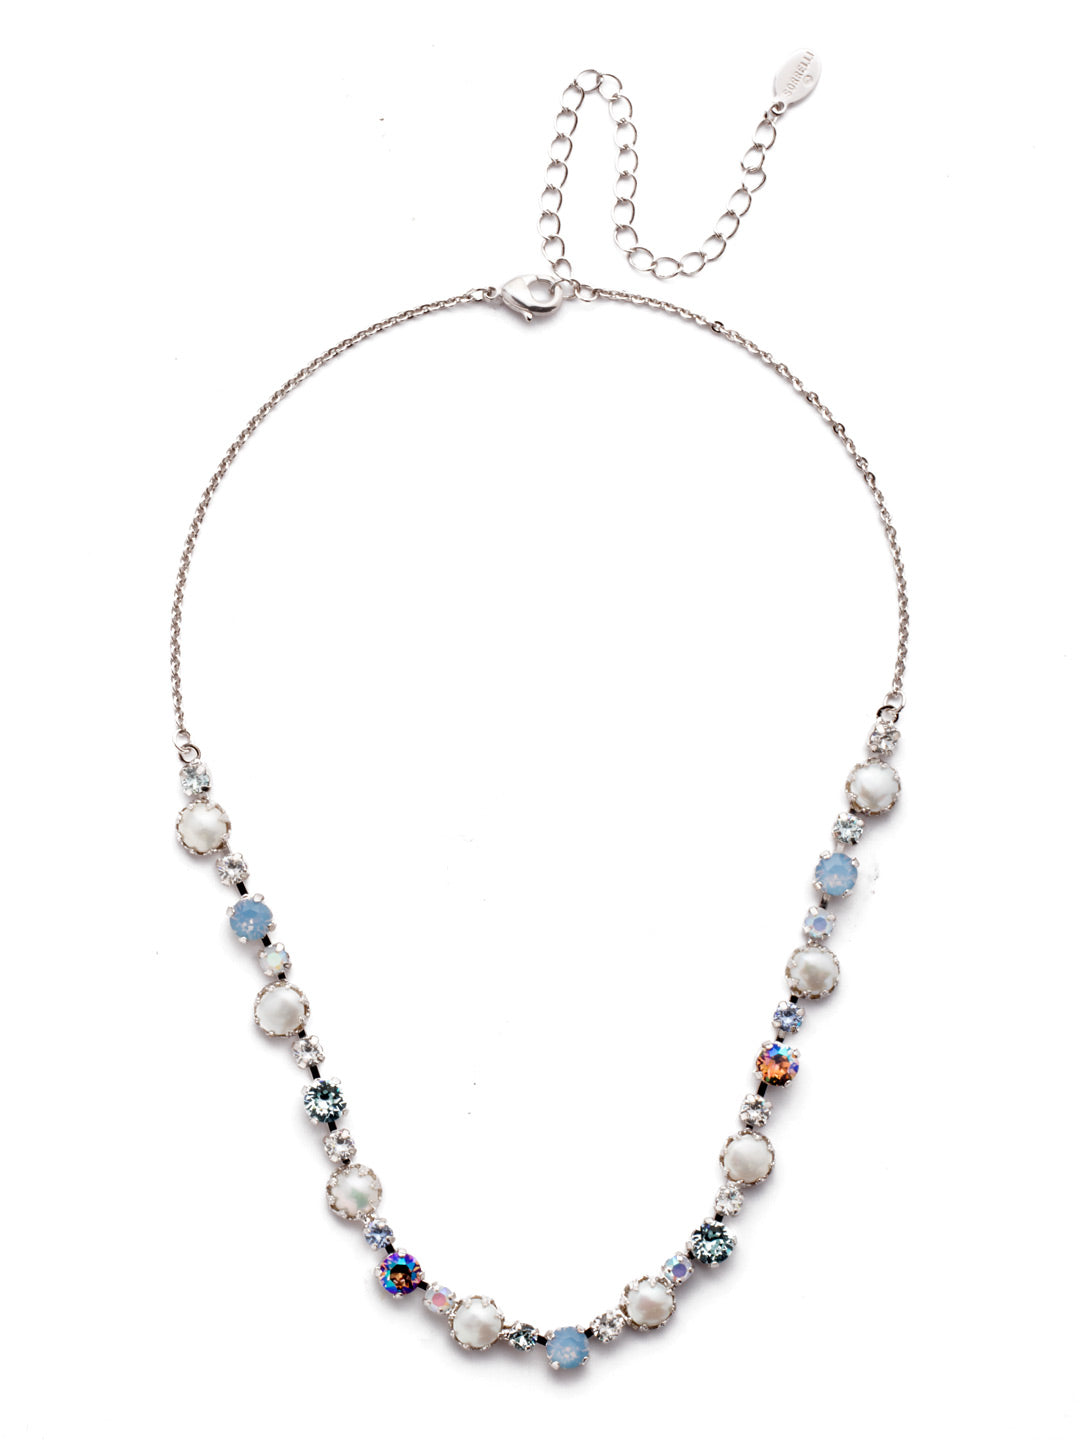 Emmanuella Tennis Necklace - NES12RHNTB